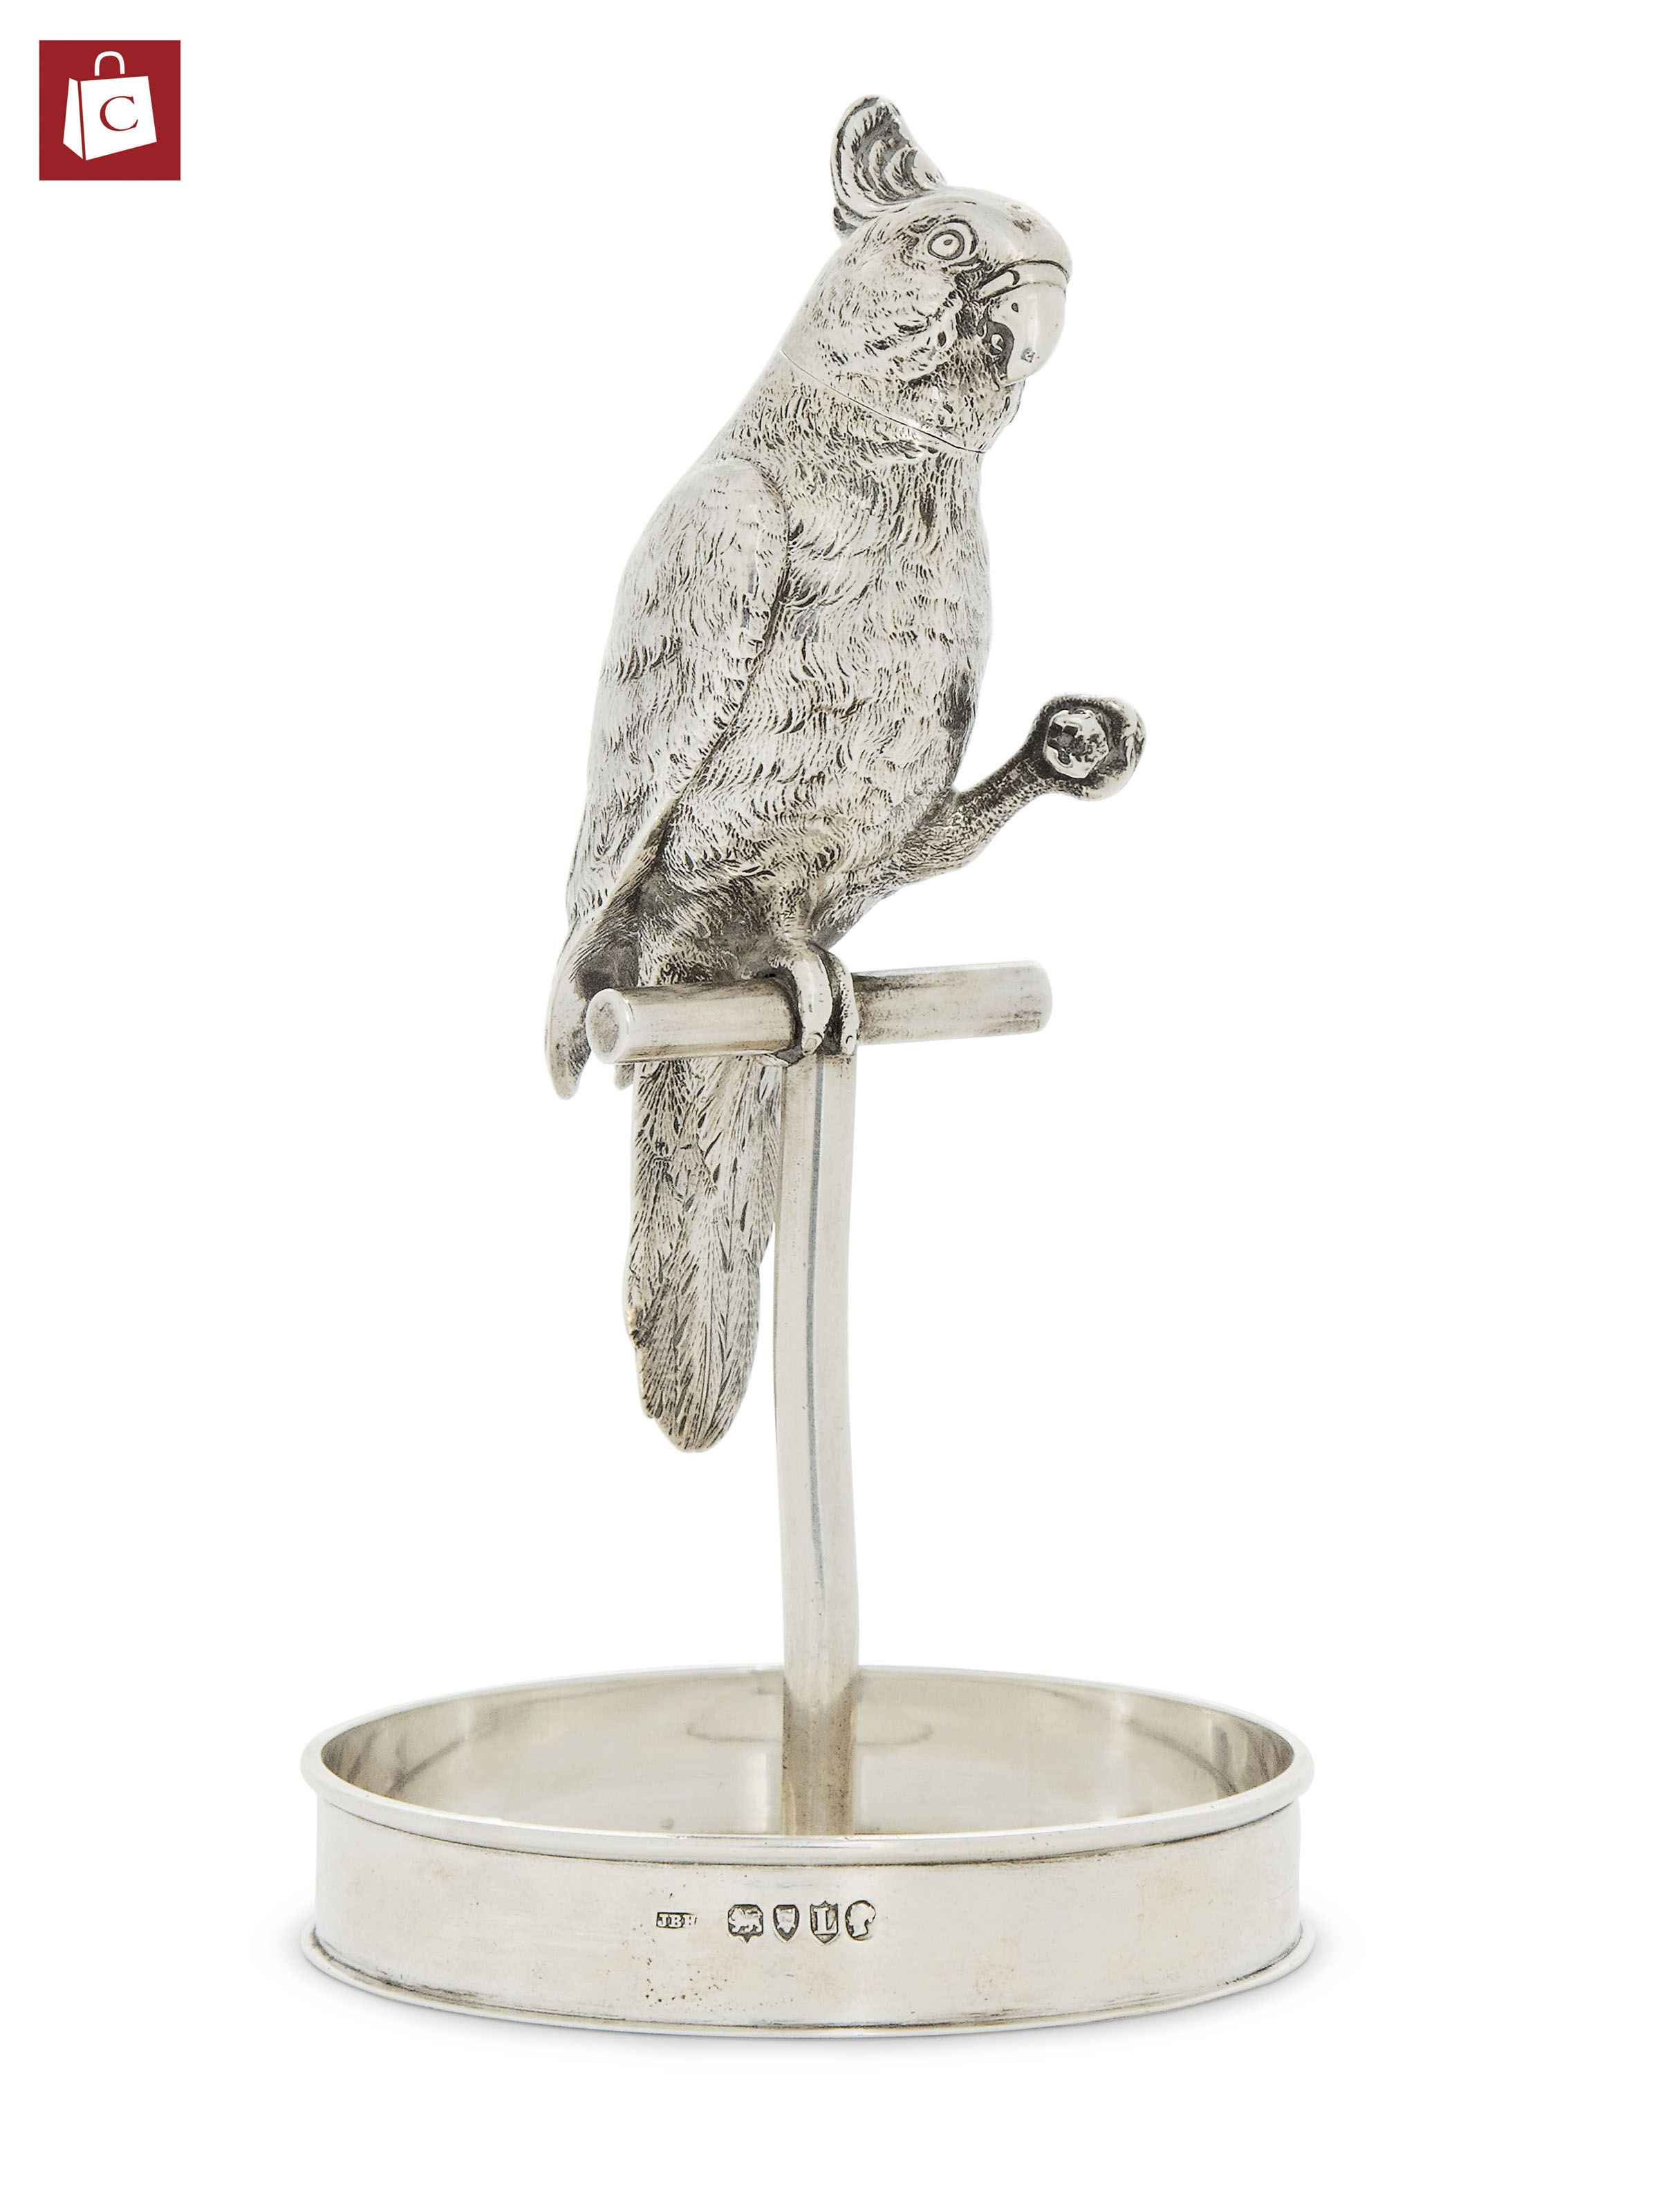 A VICTORIAN SILVER NOVELTY TABLE SPIRIT LIGHTER IN THE FORM OF A COCKATOO ON IT'S PERCH